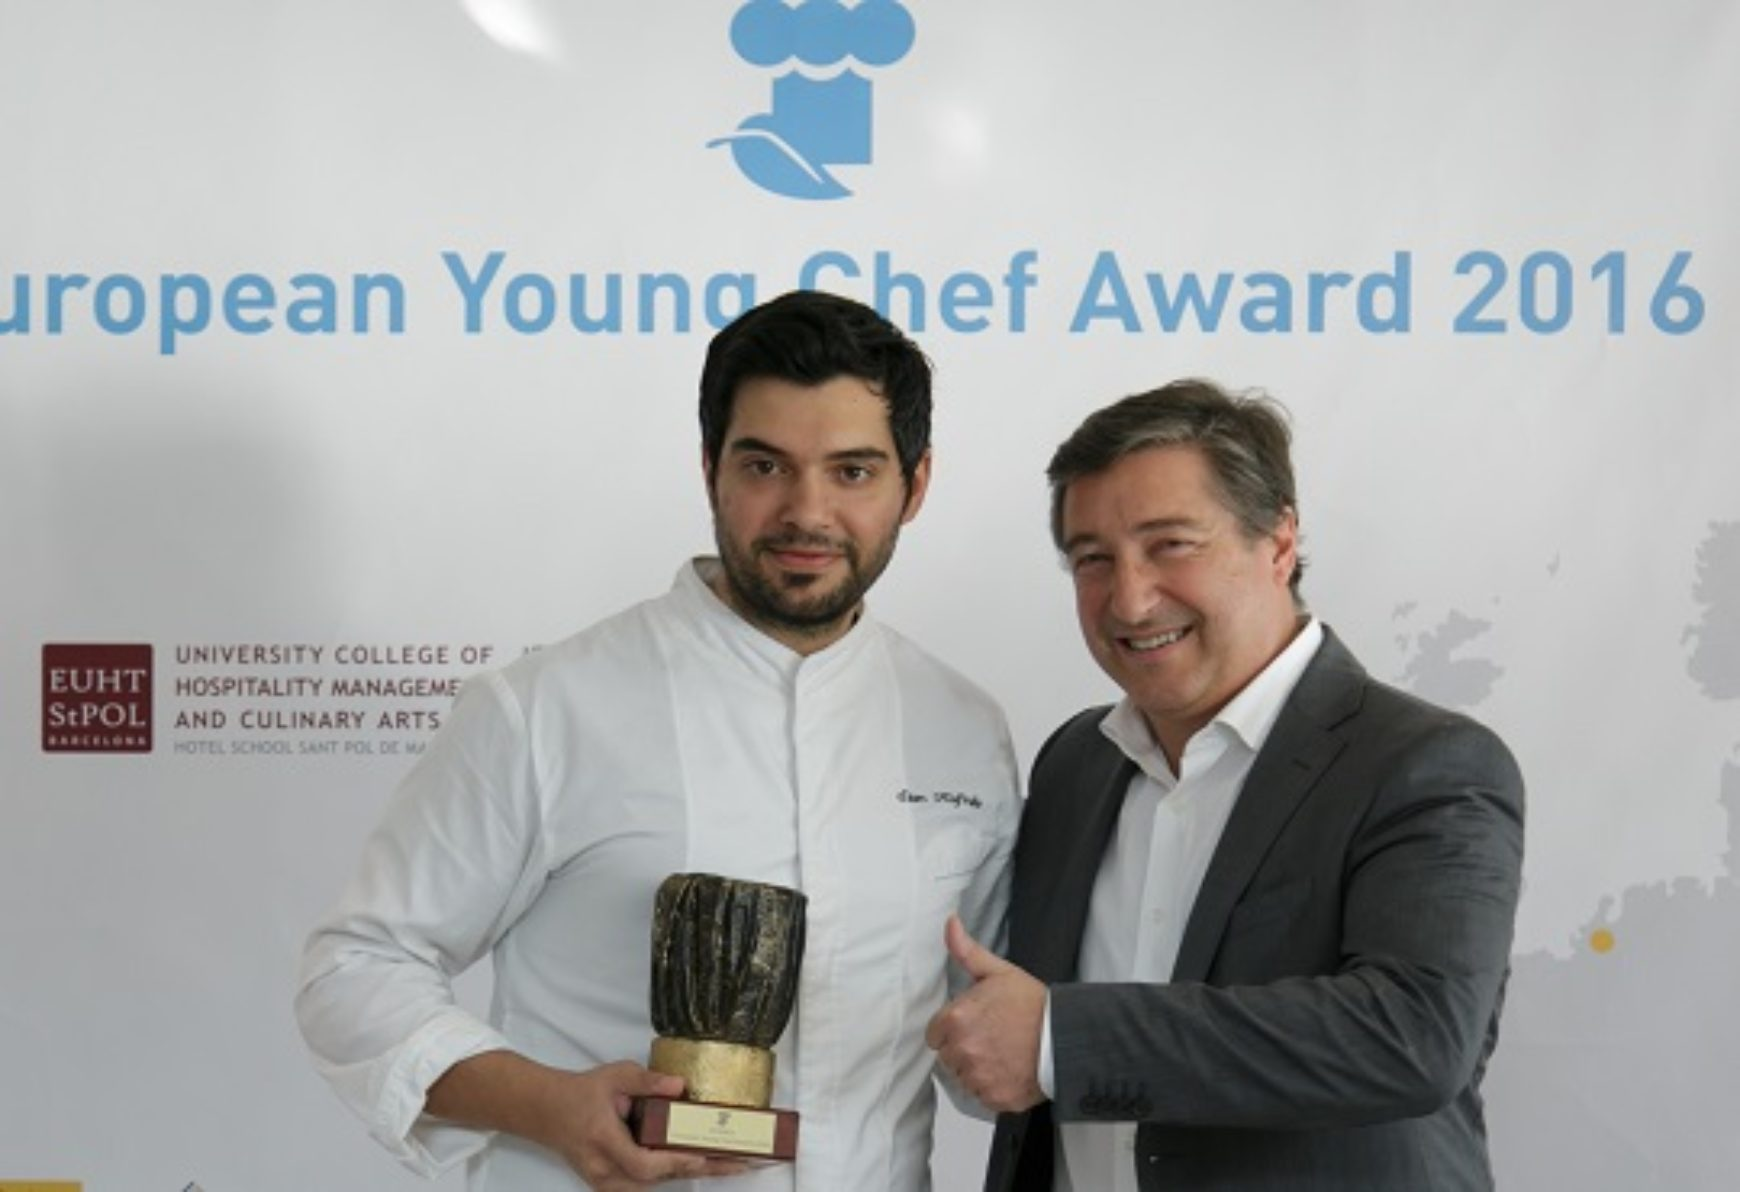 Invitation to the European Young Chef Award 2017